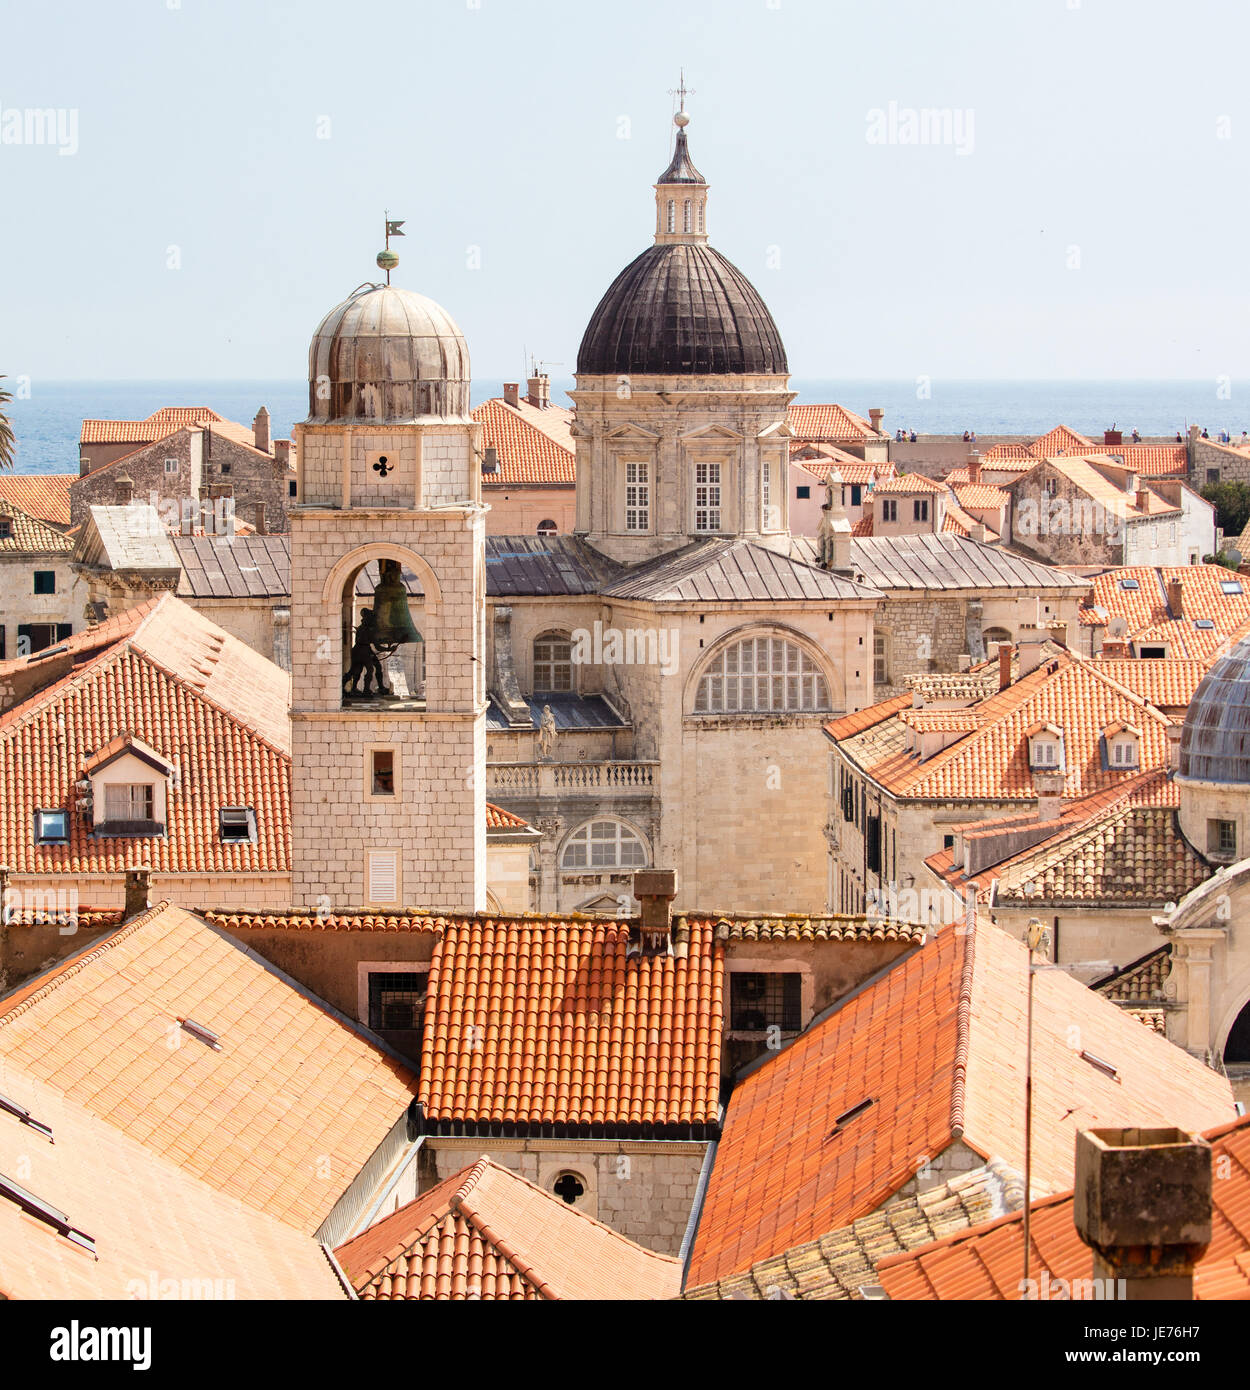 Bell tower and cathedral from the city walls of the medieval city of Dubrovnik on the Dalmation coast of Croatia - Stock Image